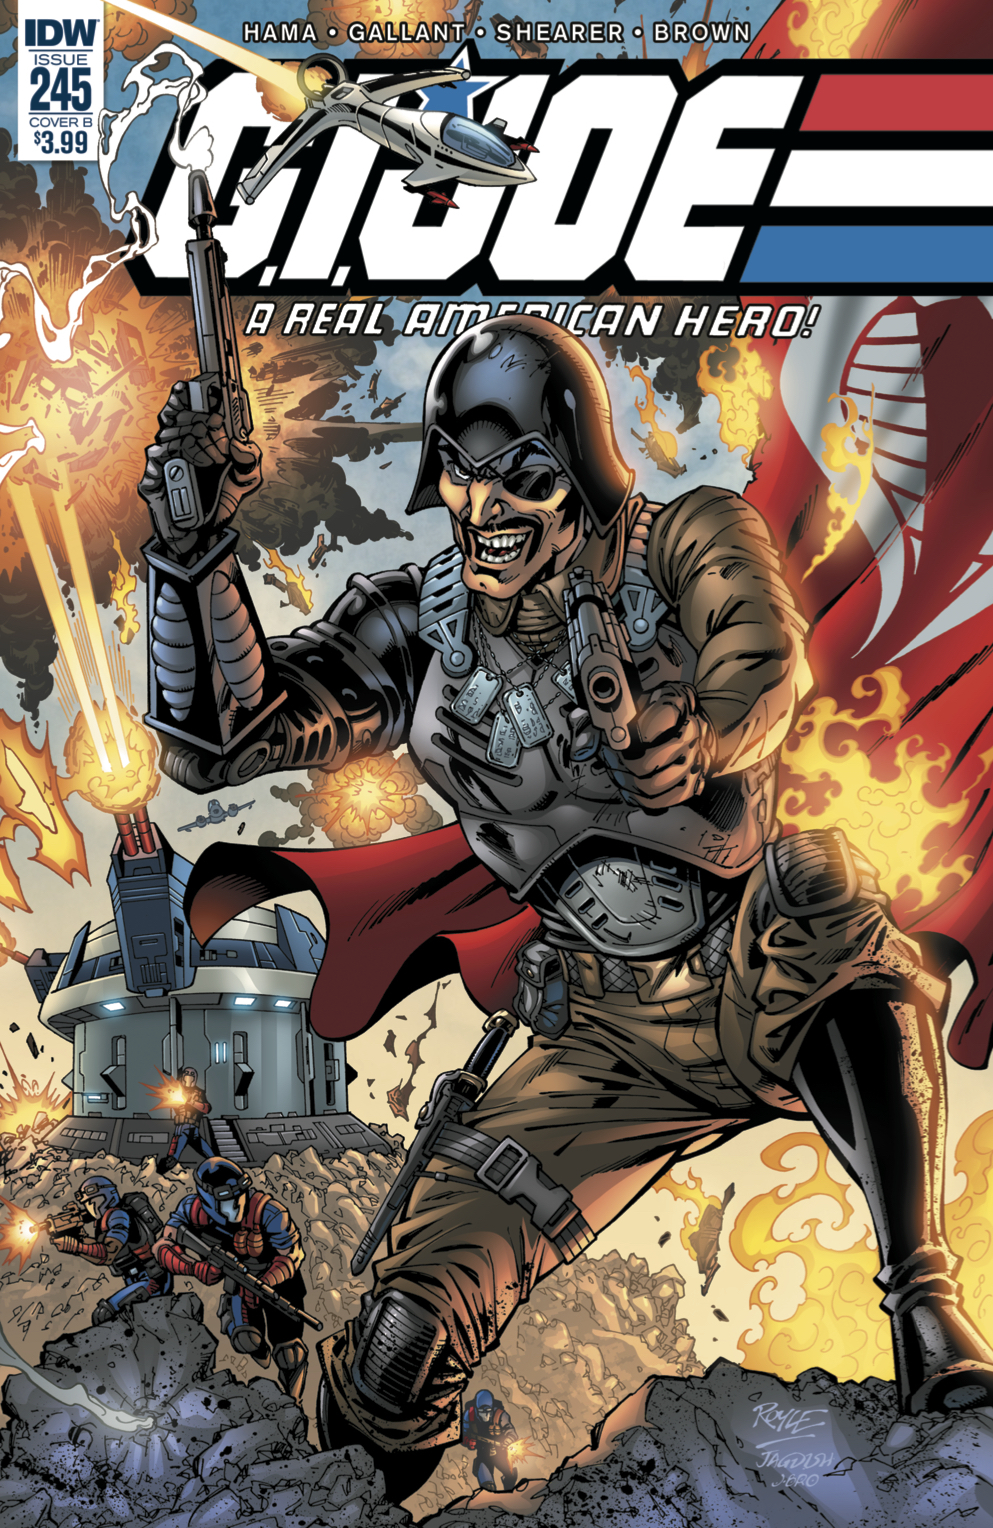 GI JOE A REAL AMERICAN HERO #245 CVR B ROYLE